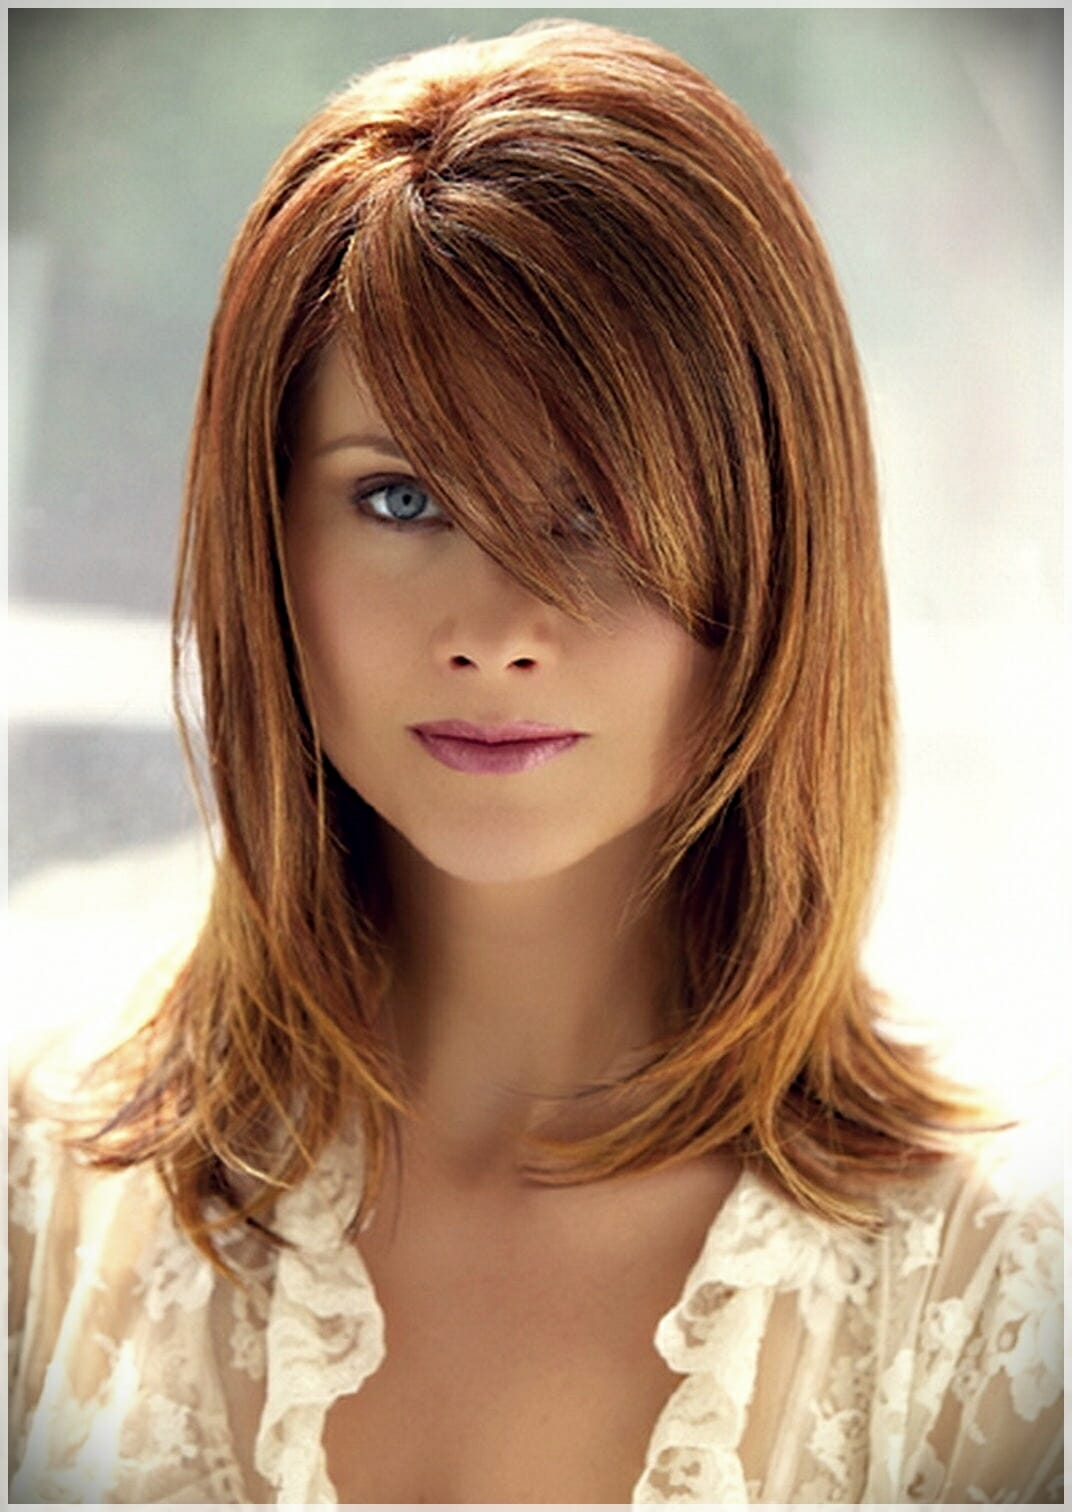 layered haircut with bangs 6 - Why getting bangs will never go out of fashion?